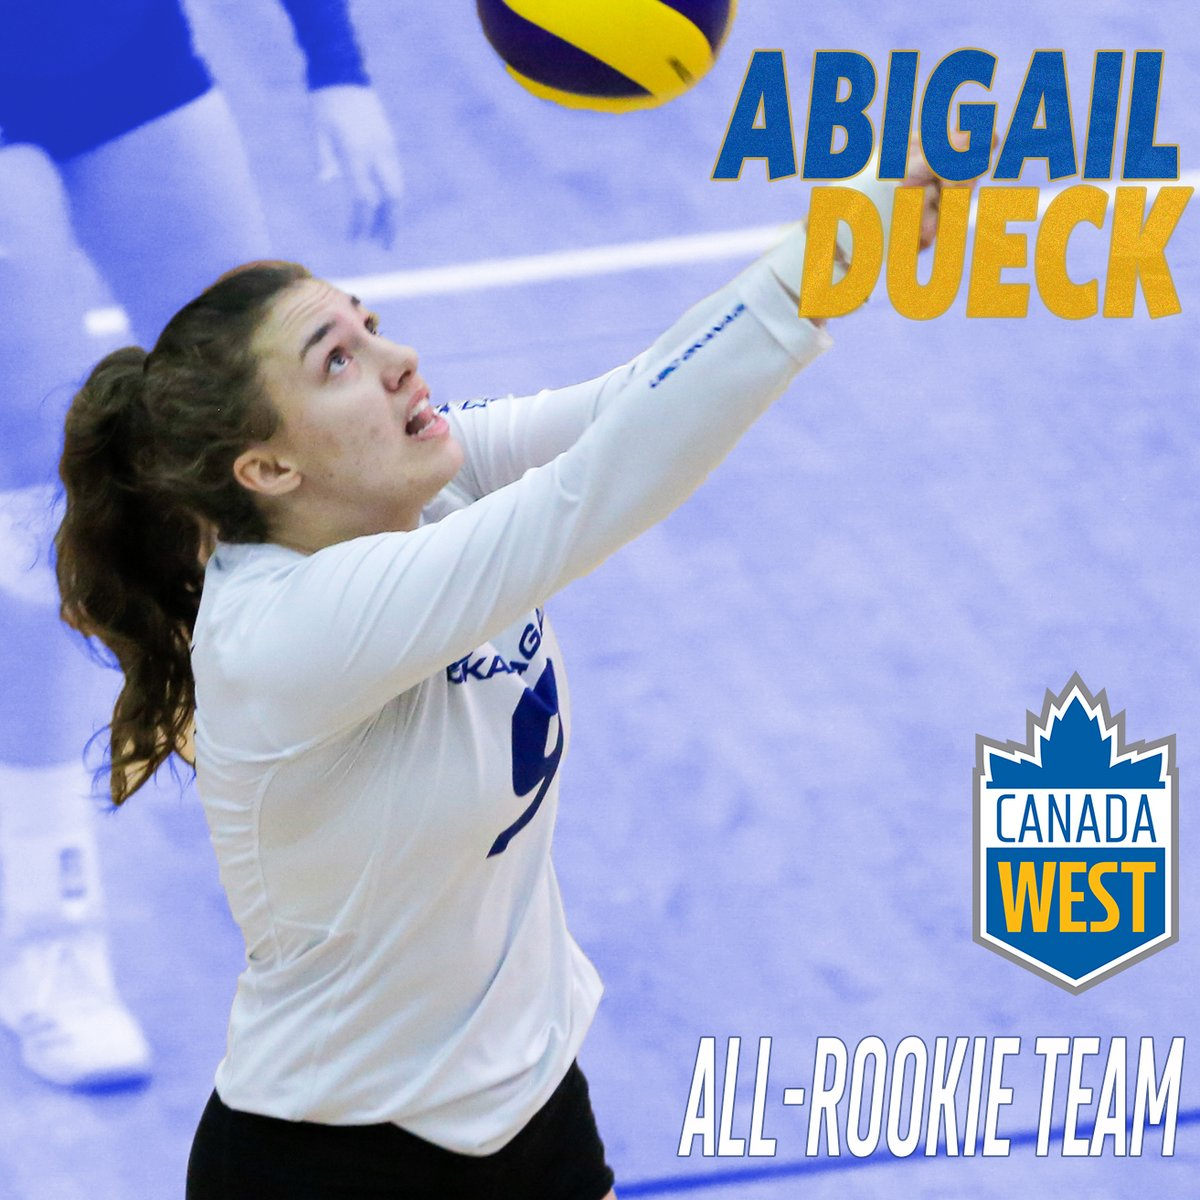 WVB Abi Dueck and Amaya Perry named to @CanadaWest All-Rookie team  The future is white-hot for @UBCOHeatWVBall.  For the 2nd straight year, 2 members of the Heat women's volleyball team have been selected to the All-Rookie Team.  http://goheat.ca/sports/wvball/2019-20/releases/20200225im01lu…pic.twitter.com/gV4EPNEfFy